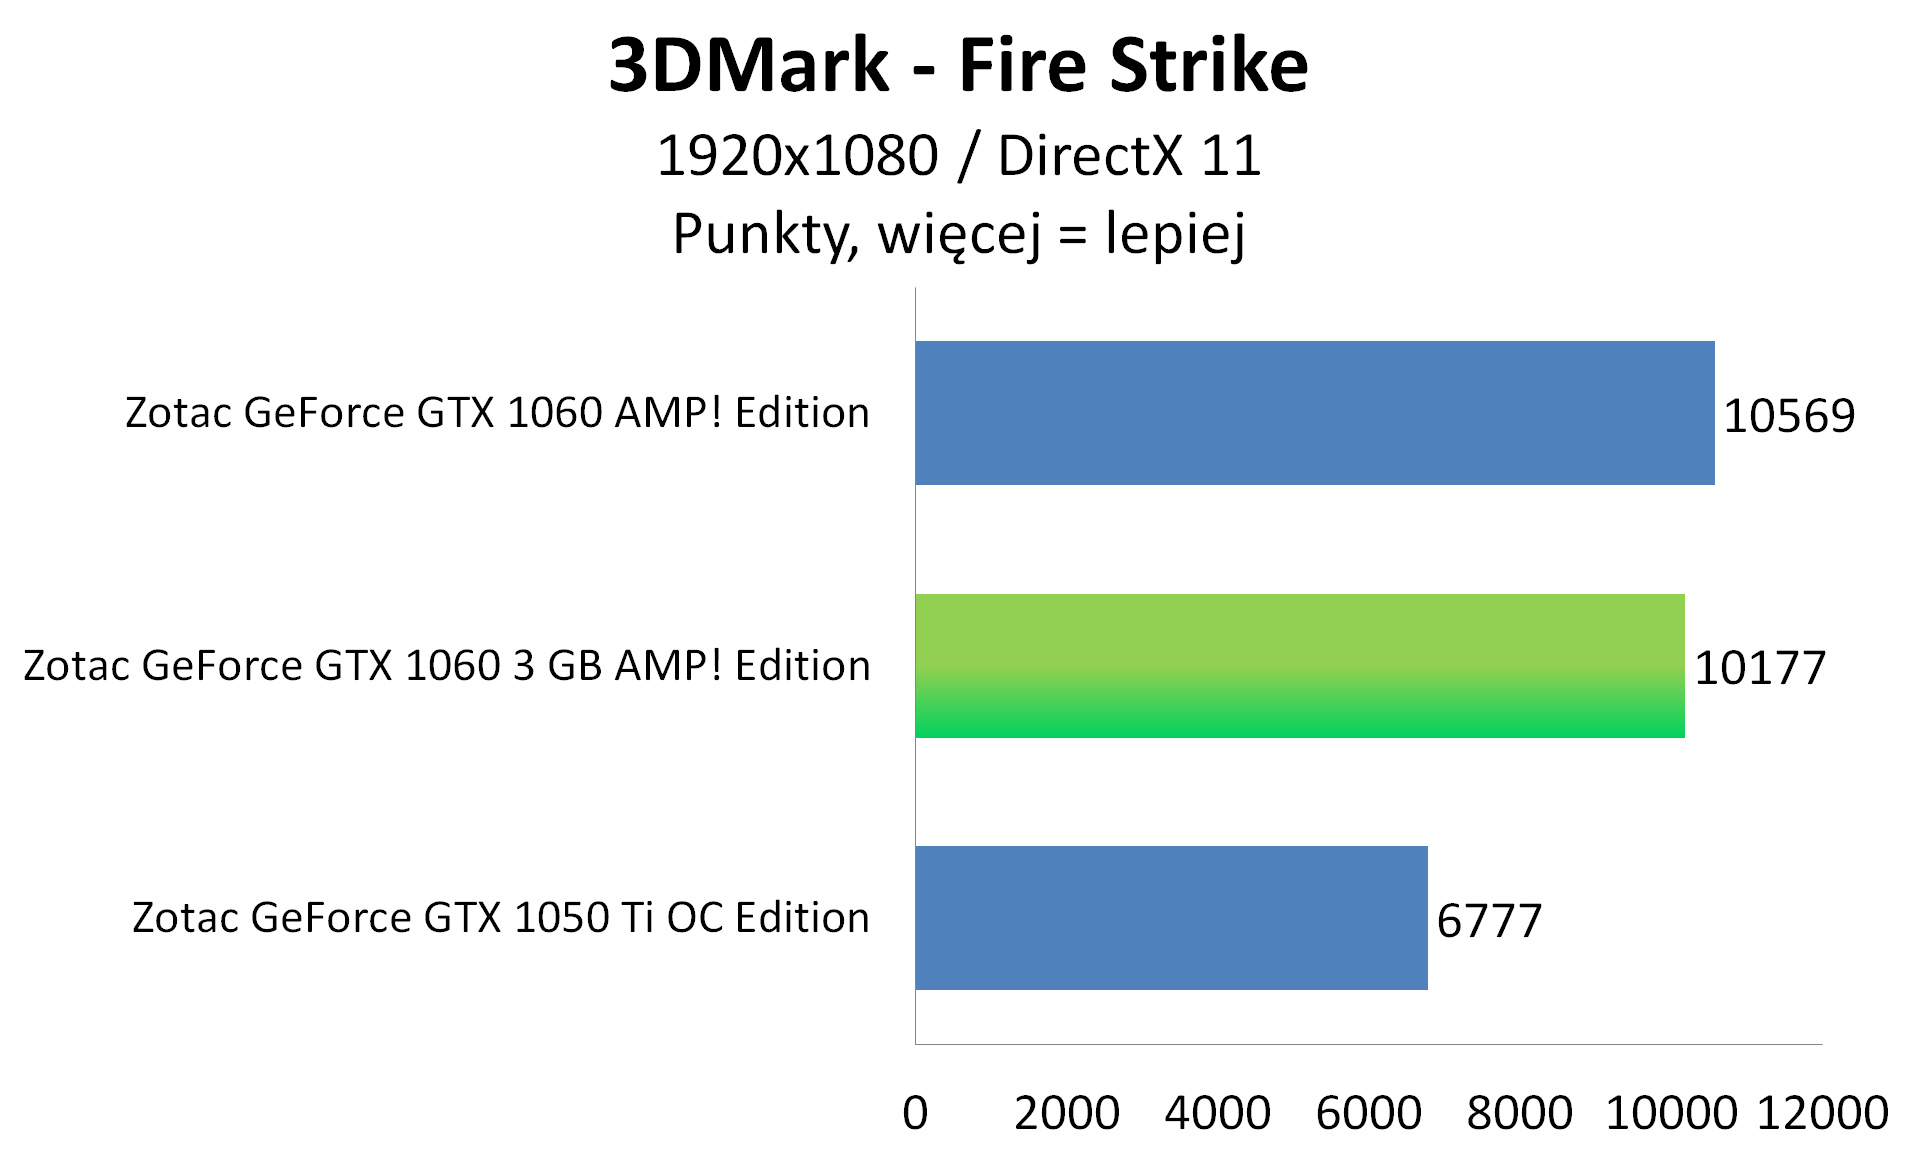 Zotac GeForce GTX 1060 3GB AMP Edition 3DMark Fire Strike